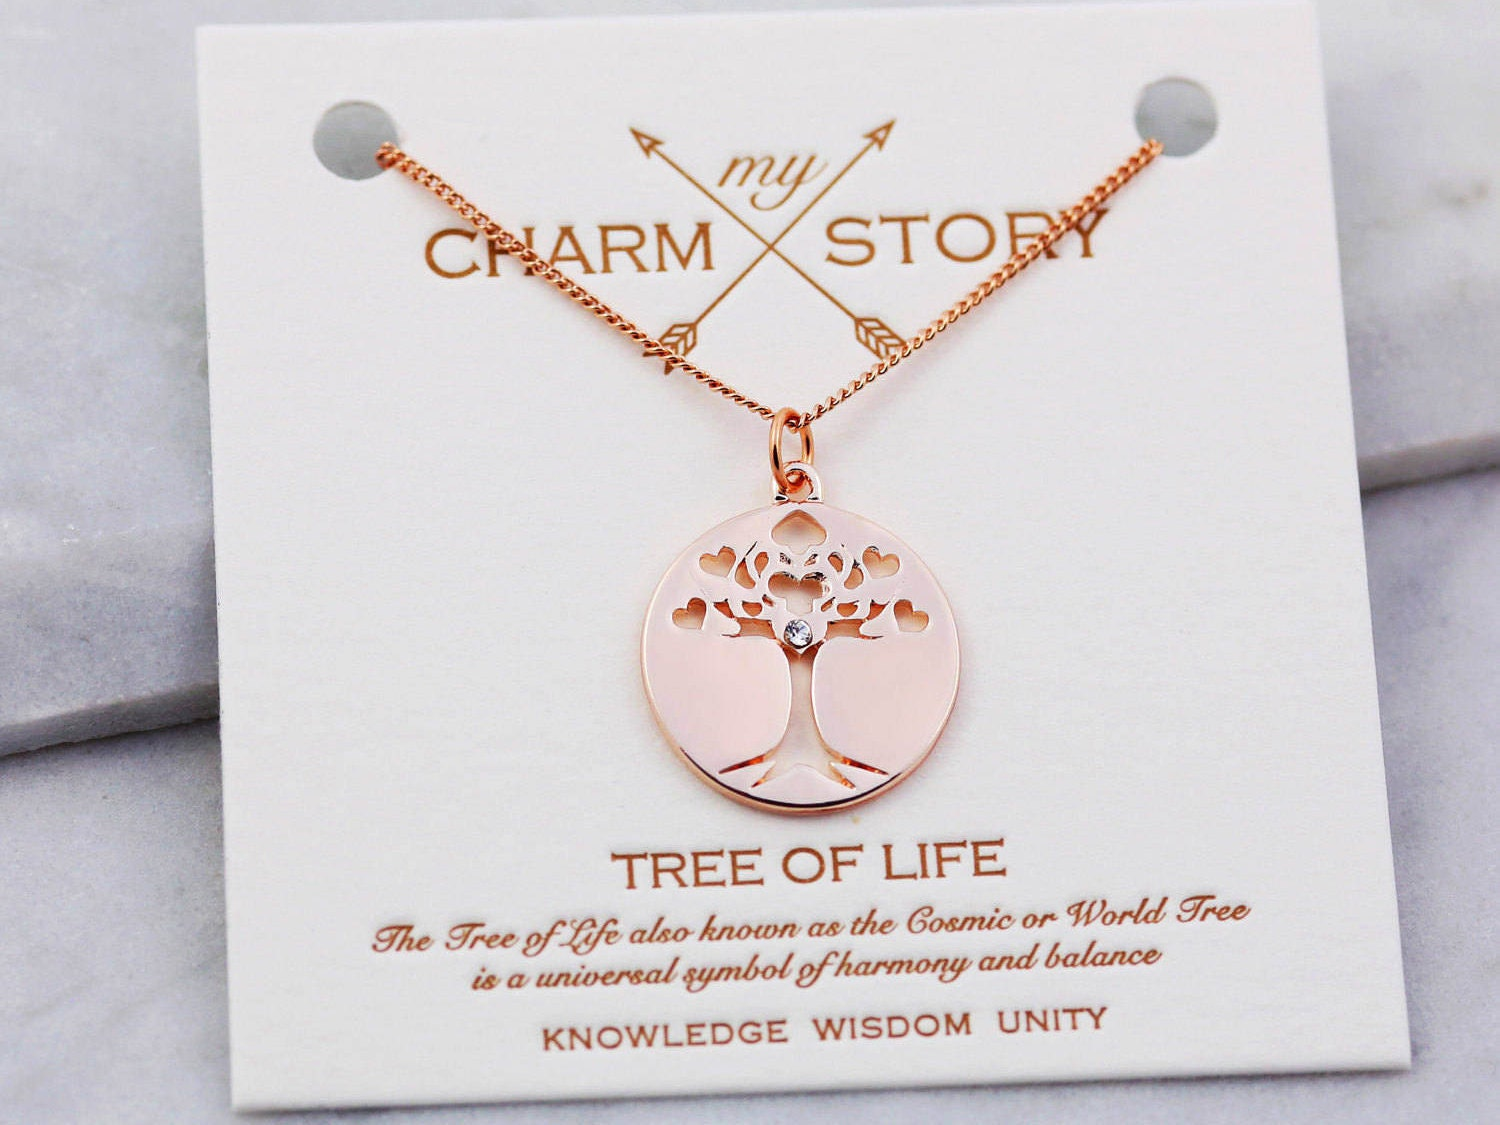 Tree of life meaning tree of life pendant family tree for What is the meaning of the tree of life jewelry